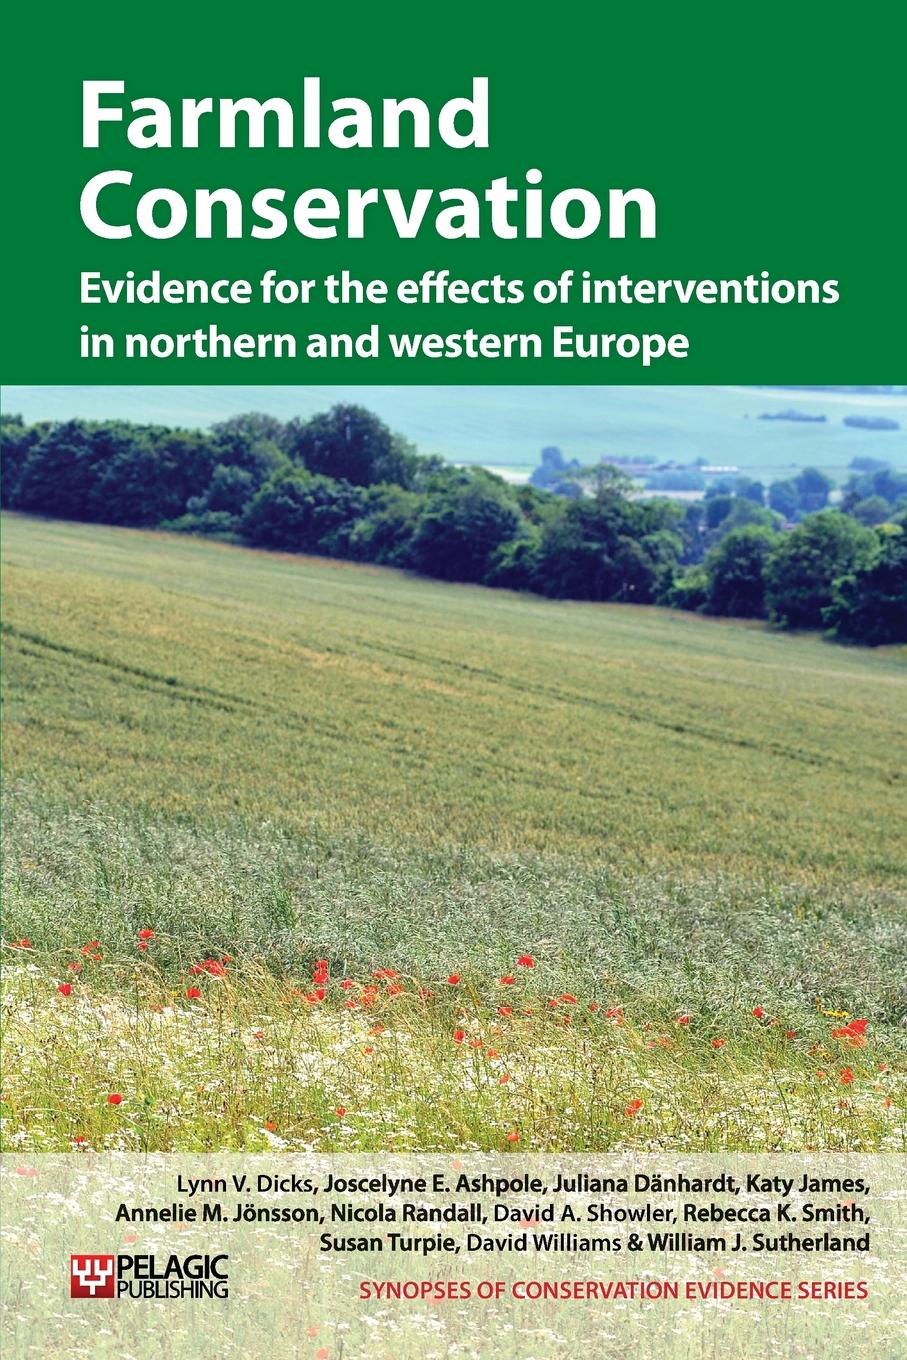 Lynn V. Dicks, Joscelyne E. Ashpole, Juliana Danhardt Farmland Conservation. Evidence for the Effects of Interventions in Northern and Western Europe mohan lal impact of rotavator as a conservation tillage implement